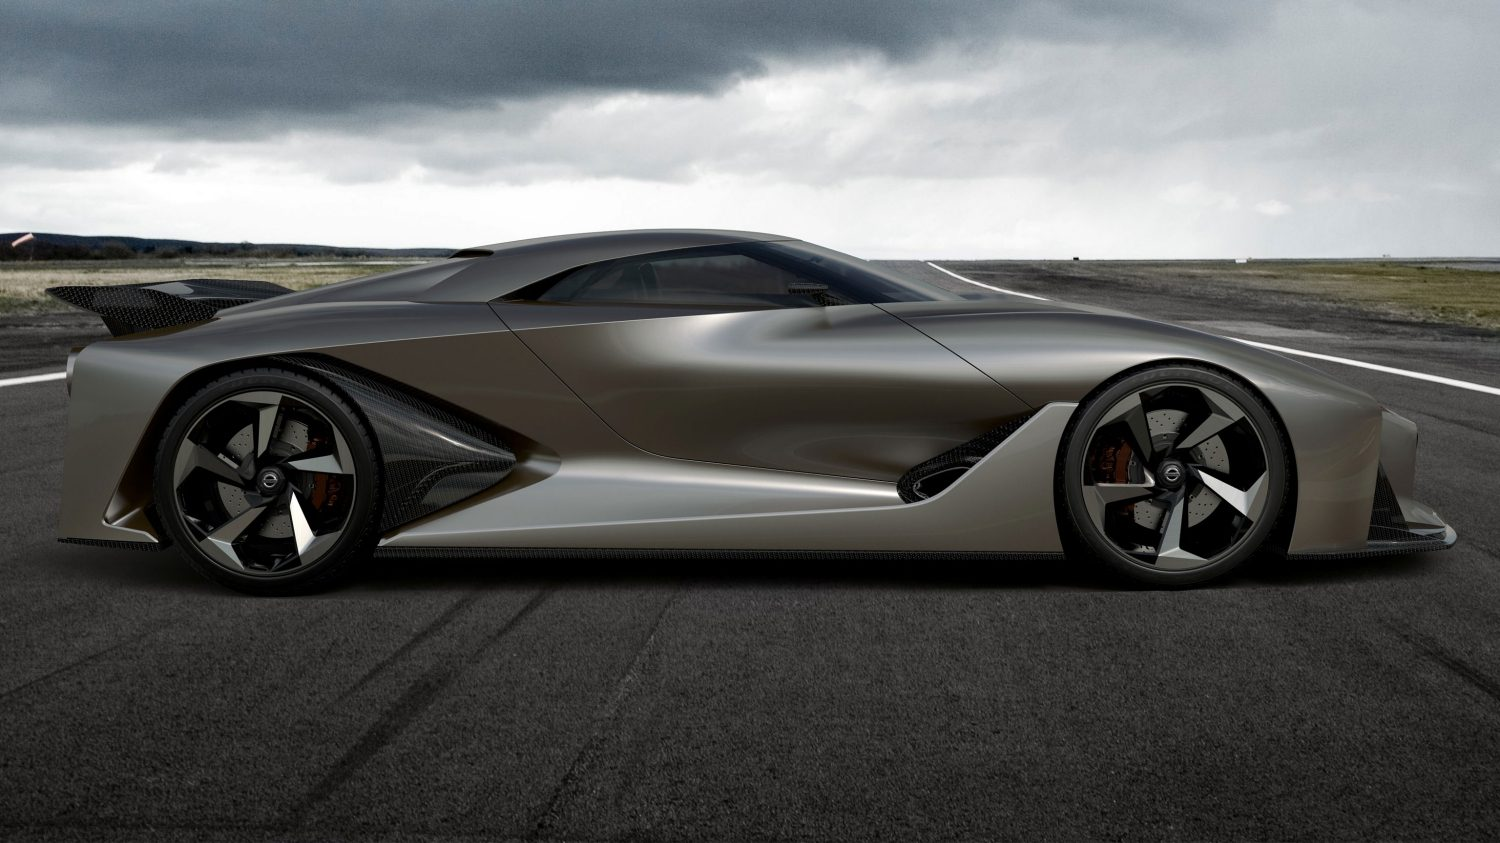 Nissan Concept 2020 Vision Gran Turismo. Gallery low profile.